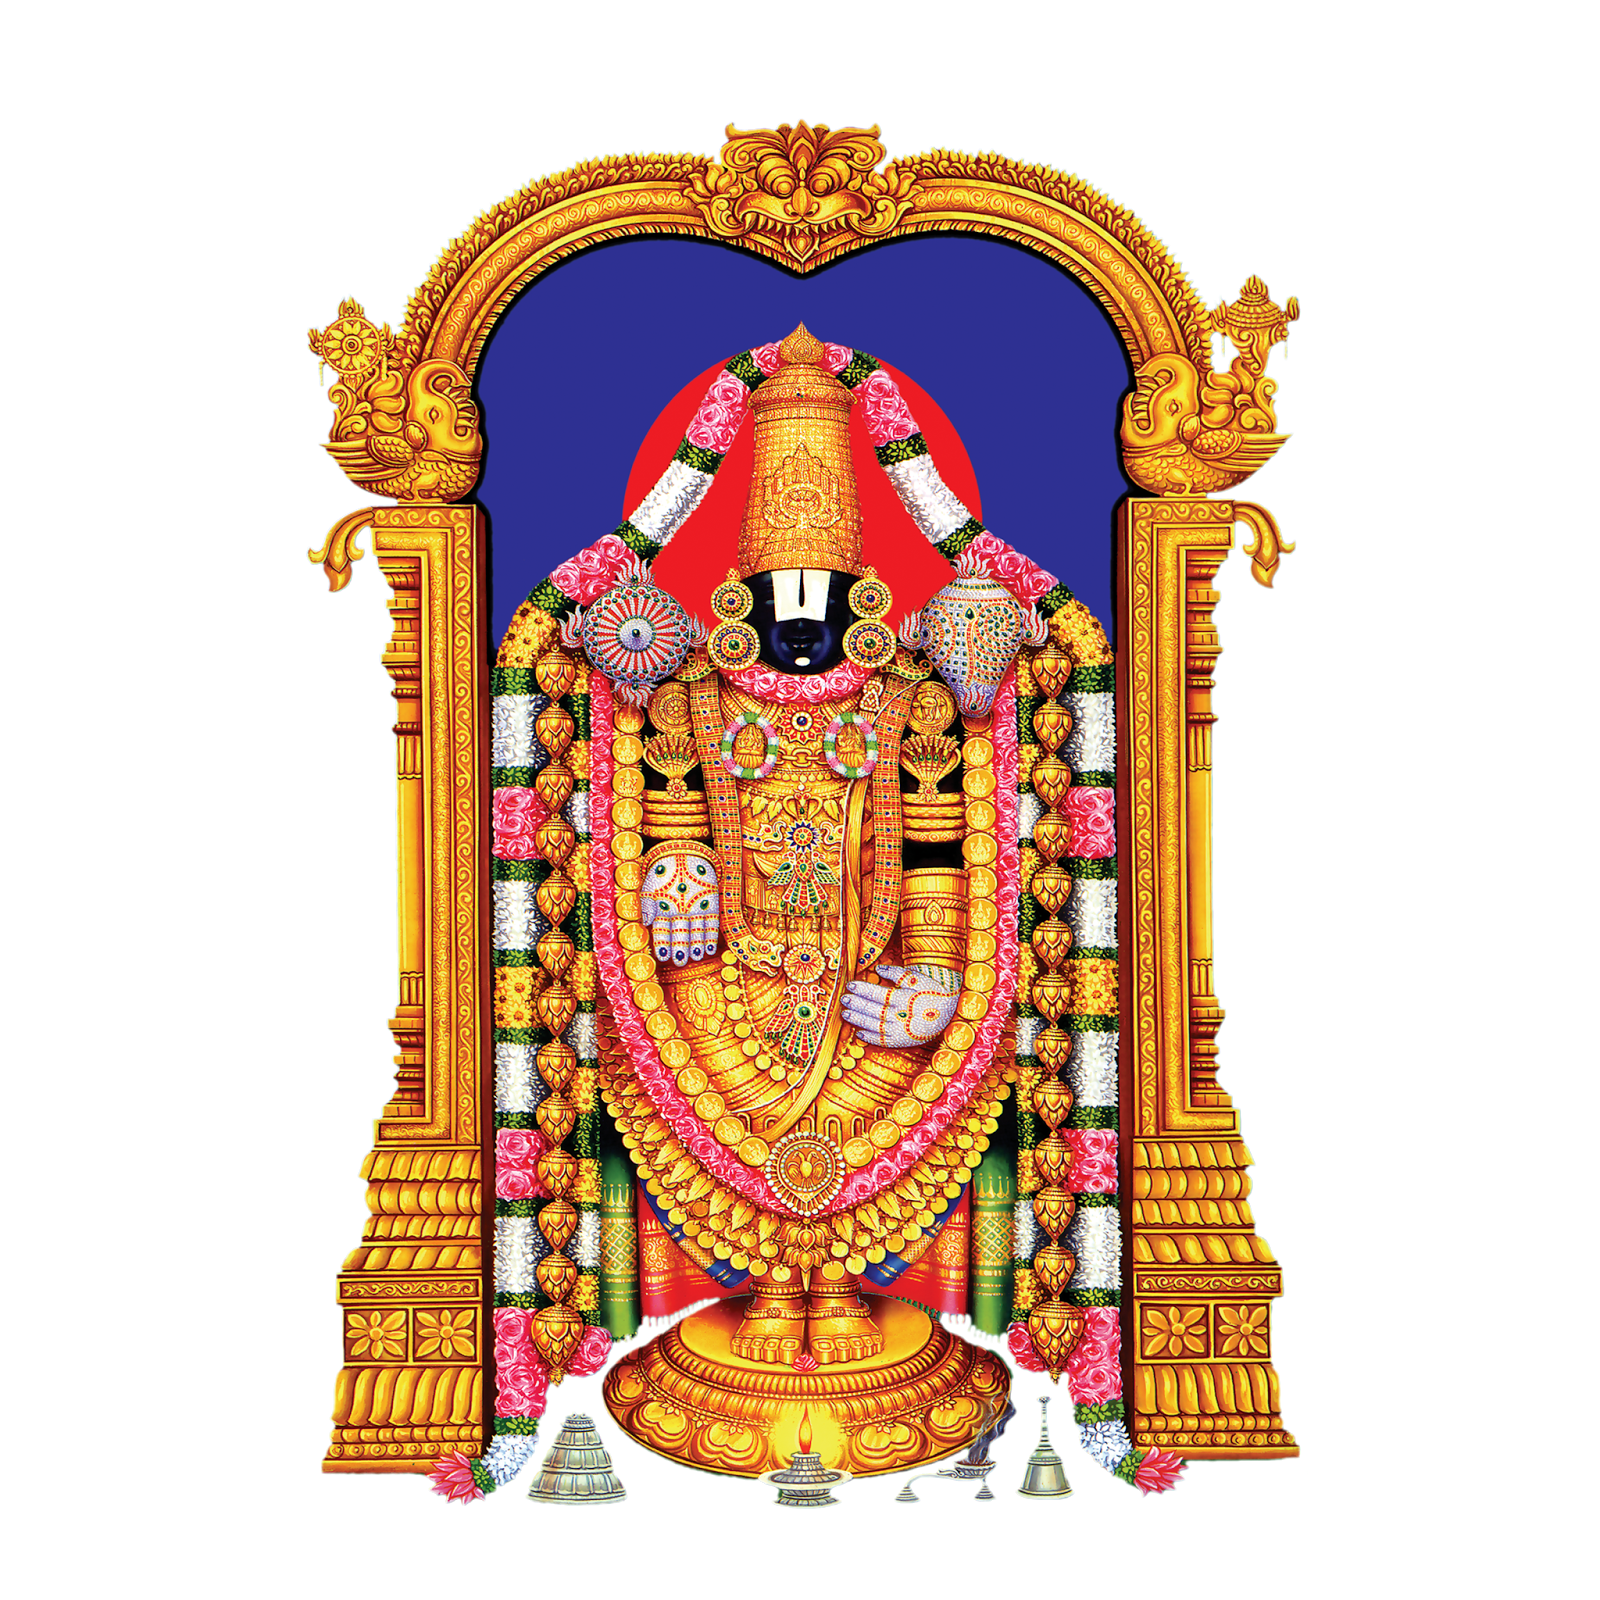 God clipart venkatajalapathi, Picture #1230819 god clipart.